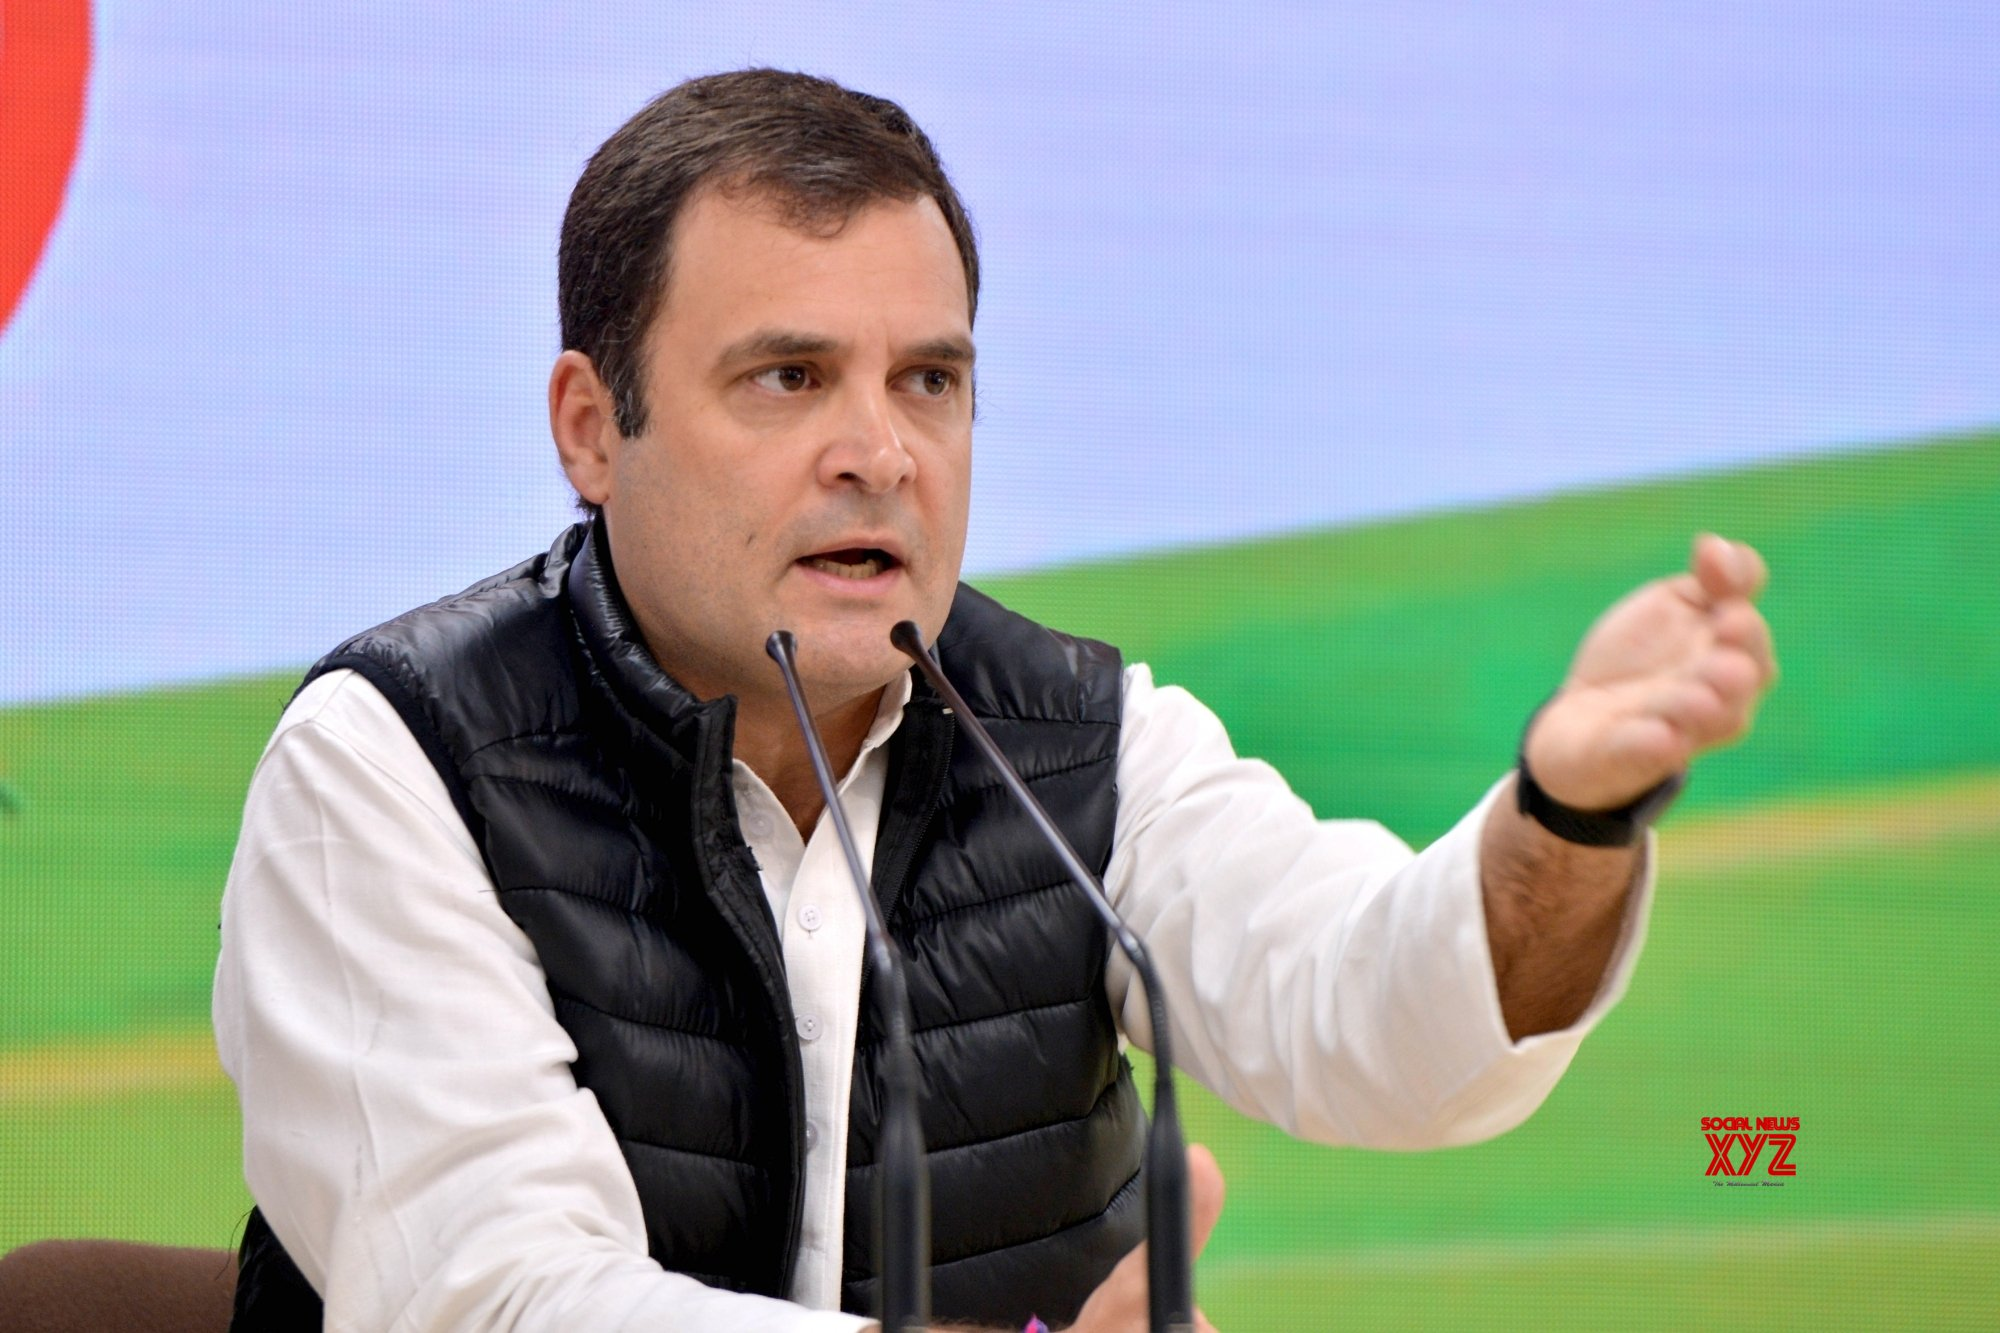 Modi washing feet of workers a 'made for media' event: Rahul